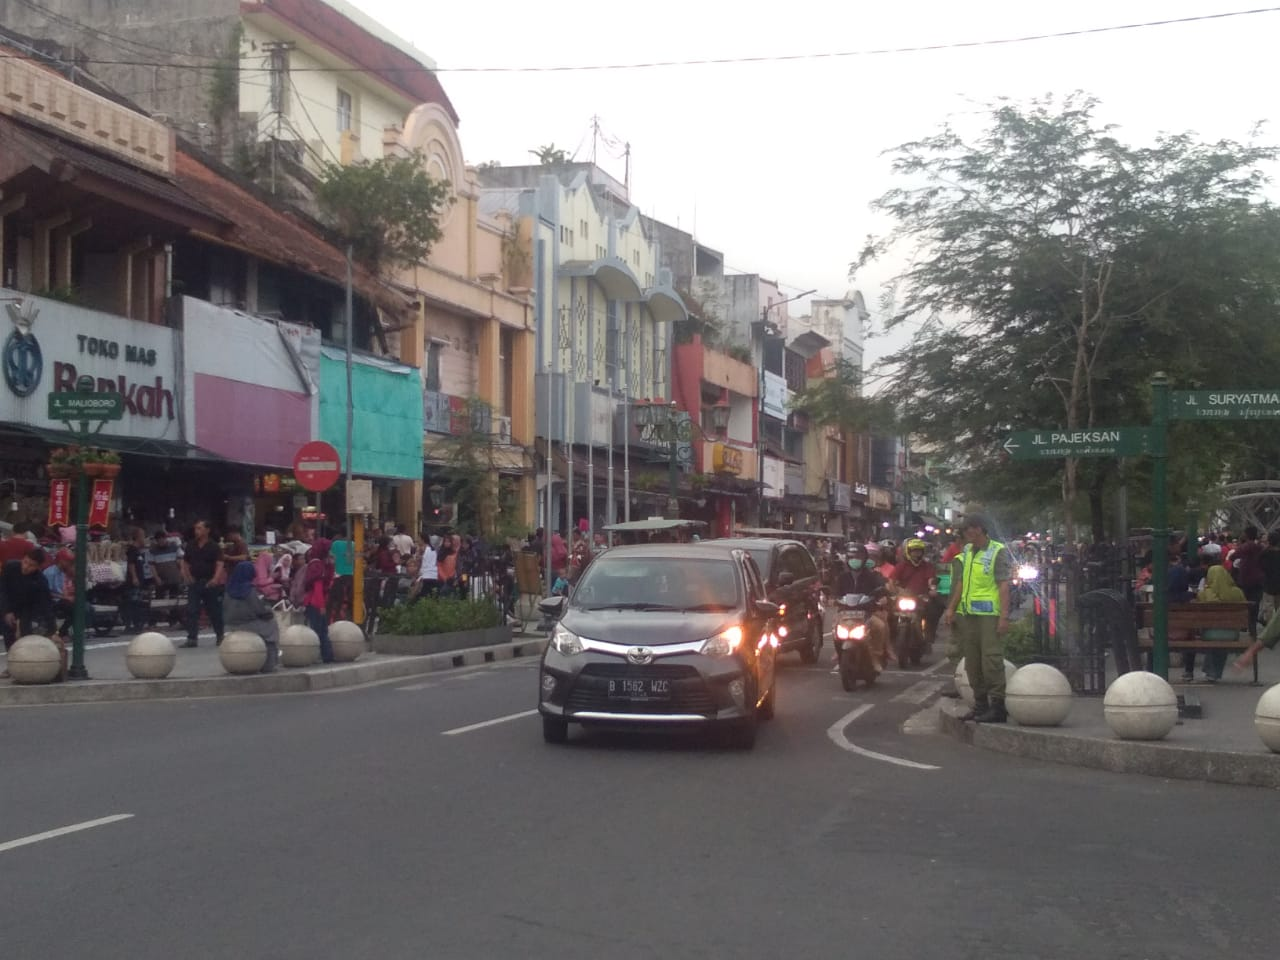 Traders complained about the Malioboro trial without motorized vehicles